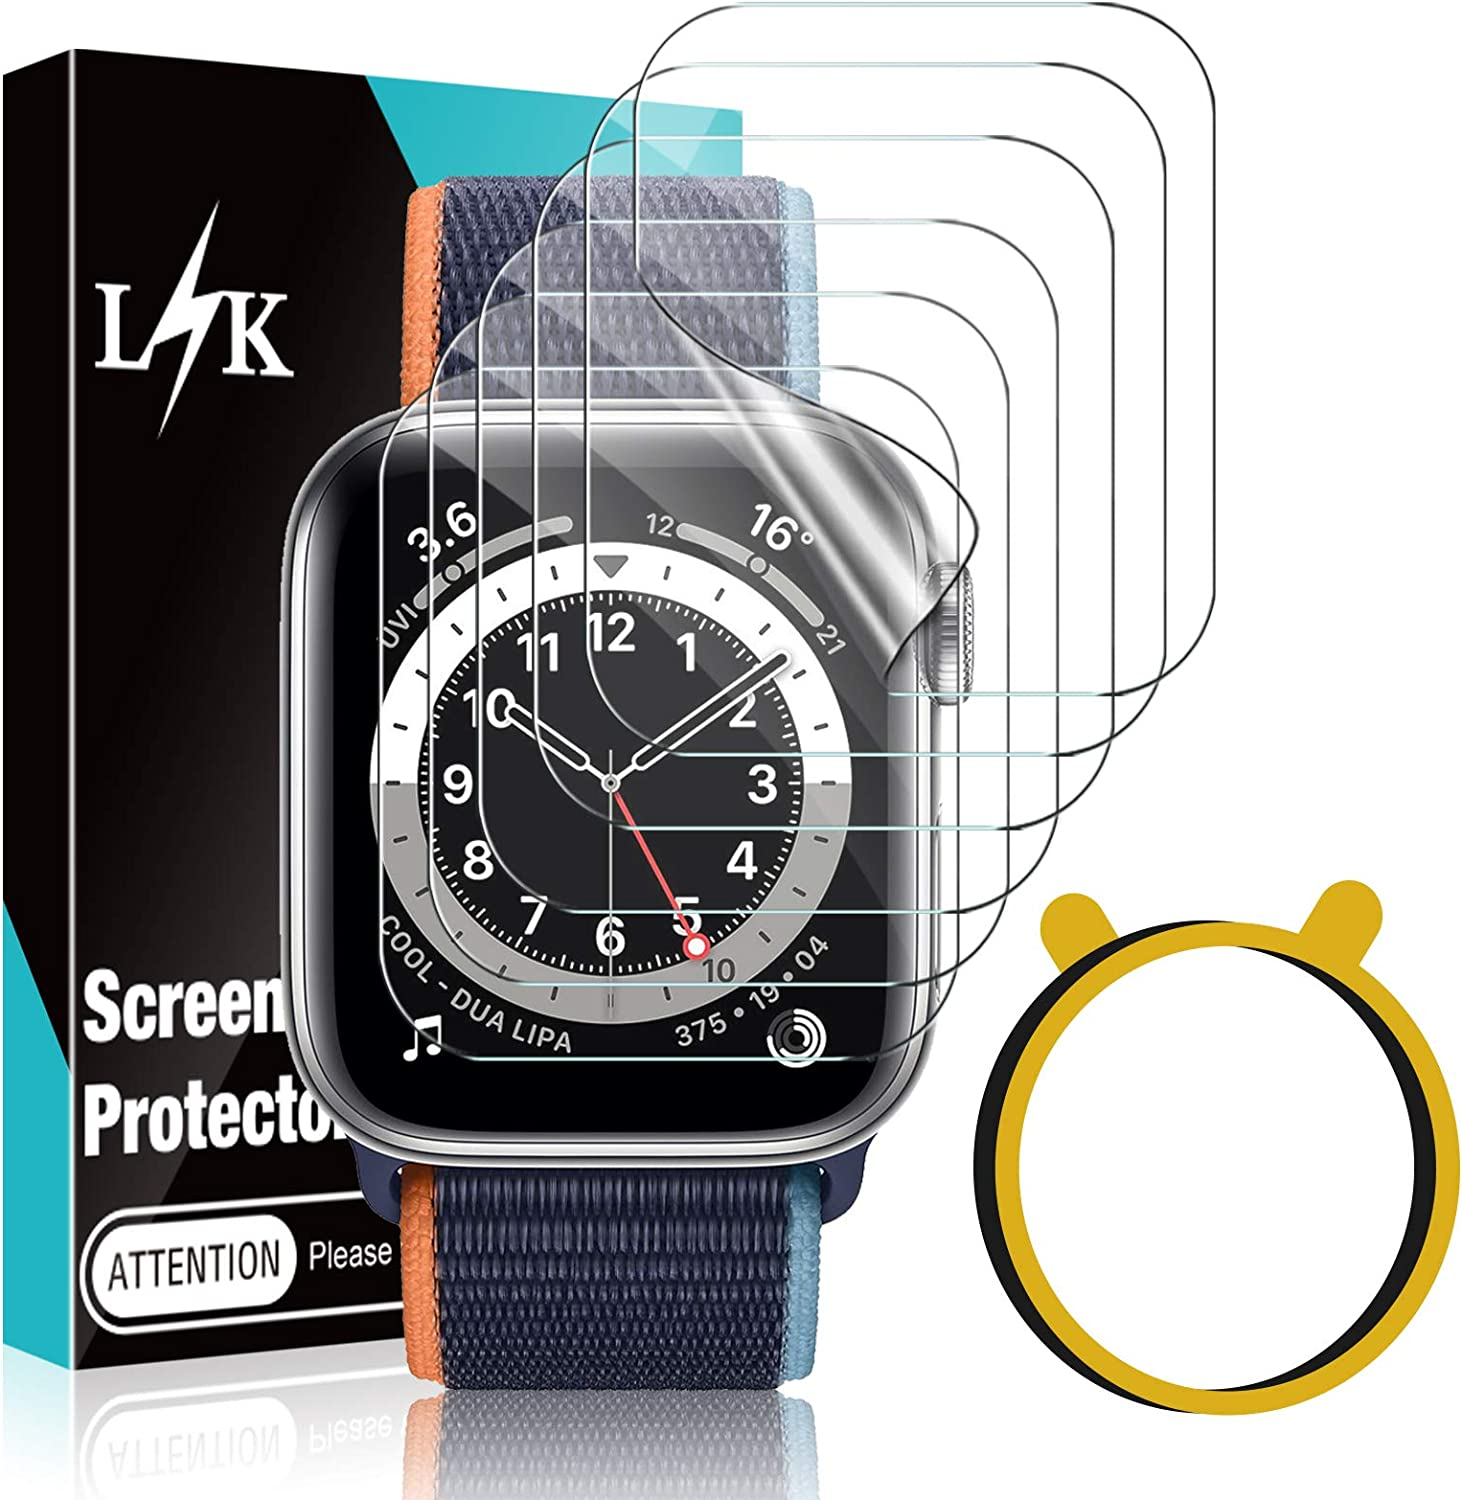 6 Pack LϟK Screen Protector Compatible for Apple Watch SE & Series 6 44mm, Max Coverage Bubble-Free Flexible TPU Clear Film with Circle Installation Tool